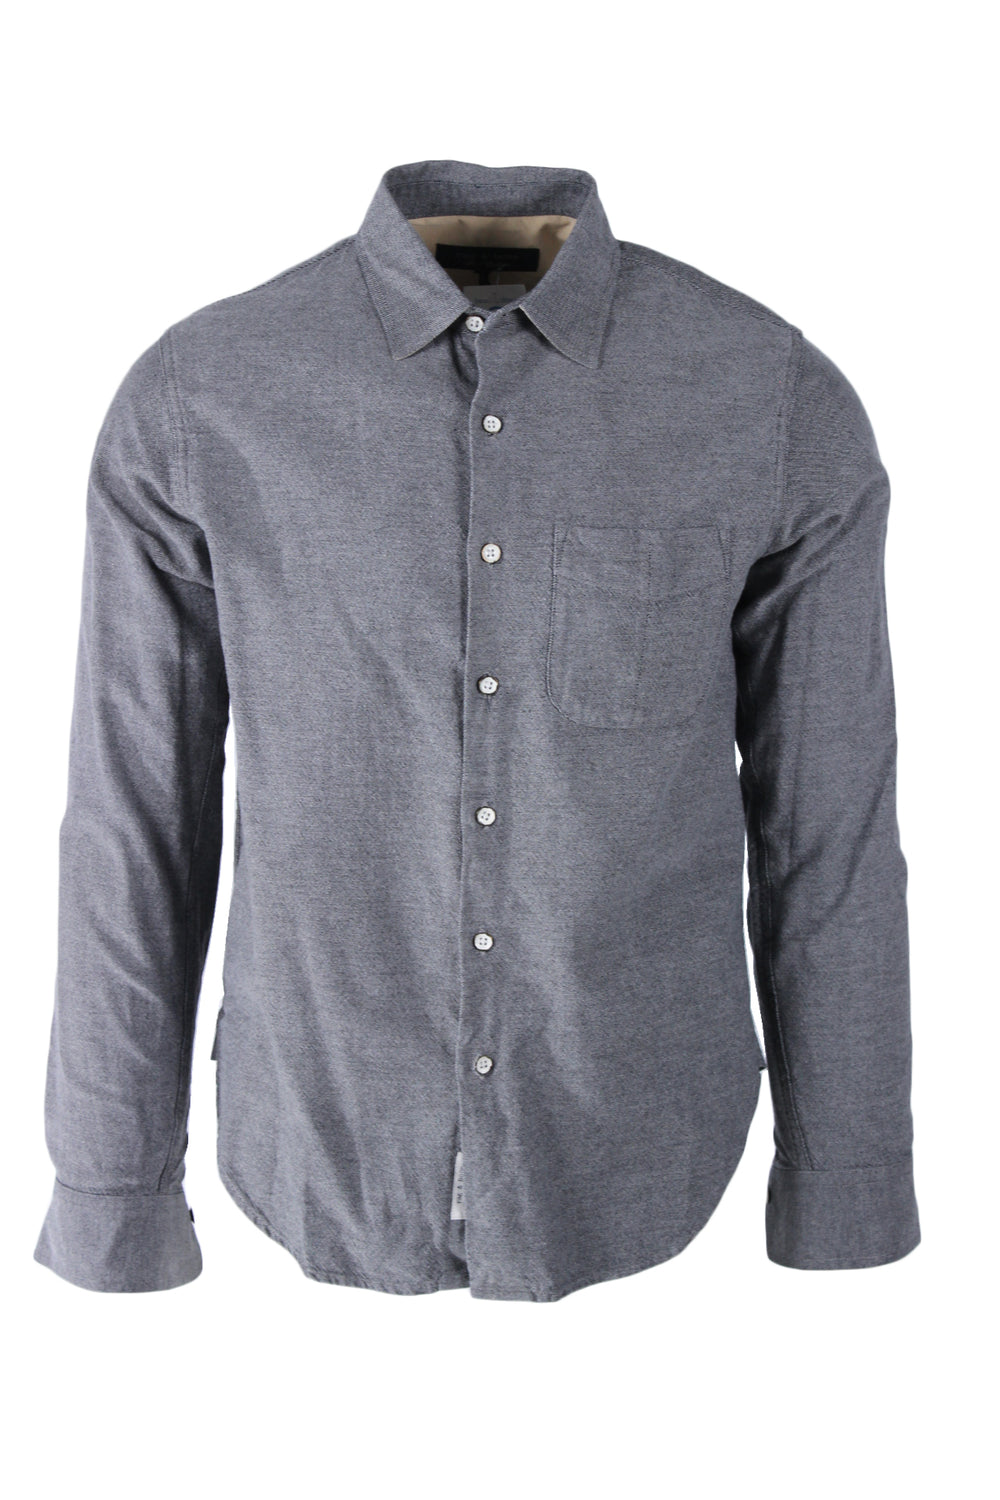 rag & bone grey long sleeve button up shirt. features 'rag & bone' logo tag at bottom of placket with pocket at left breast.